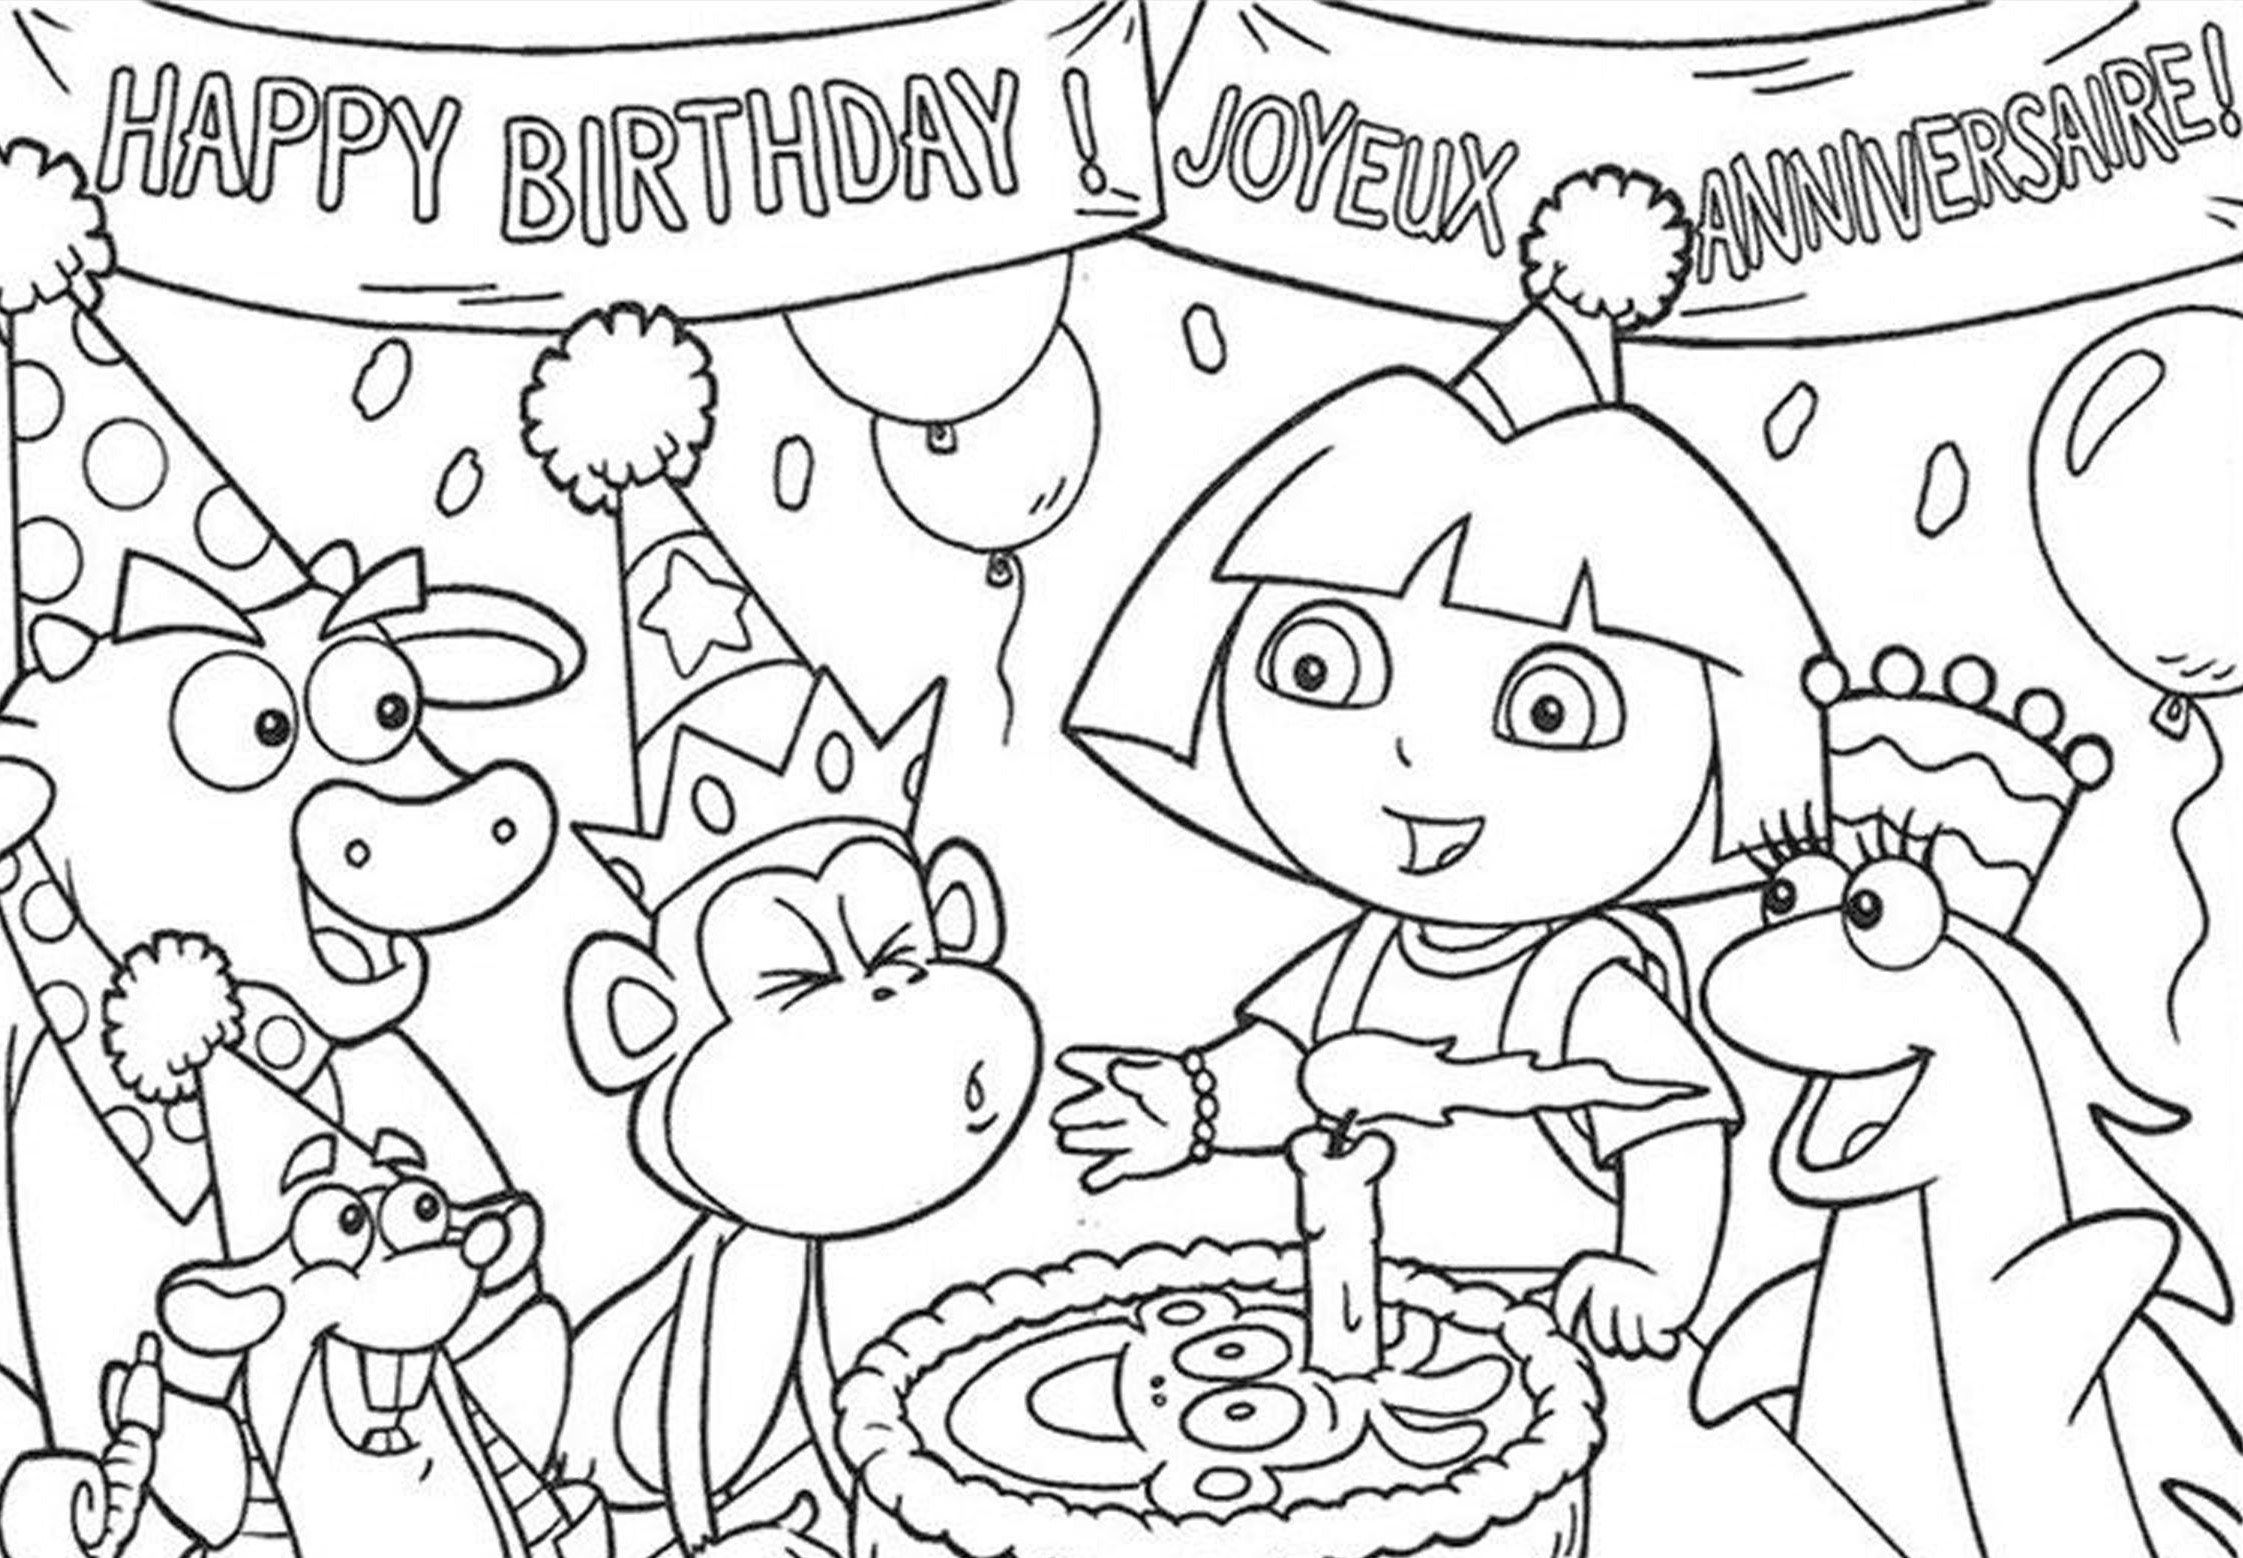 Grab Your New Coloring Pages Dora Download Https Gethighit Com New Coloring Pages Dora Downloa Birthday Coloring Pages Dora Coloring Cartoon Coloring Pages